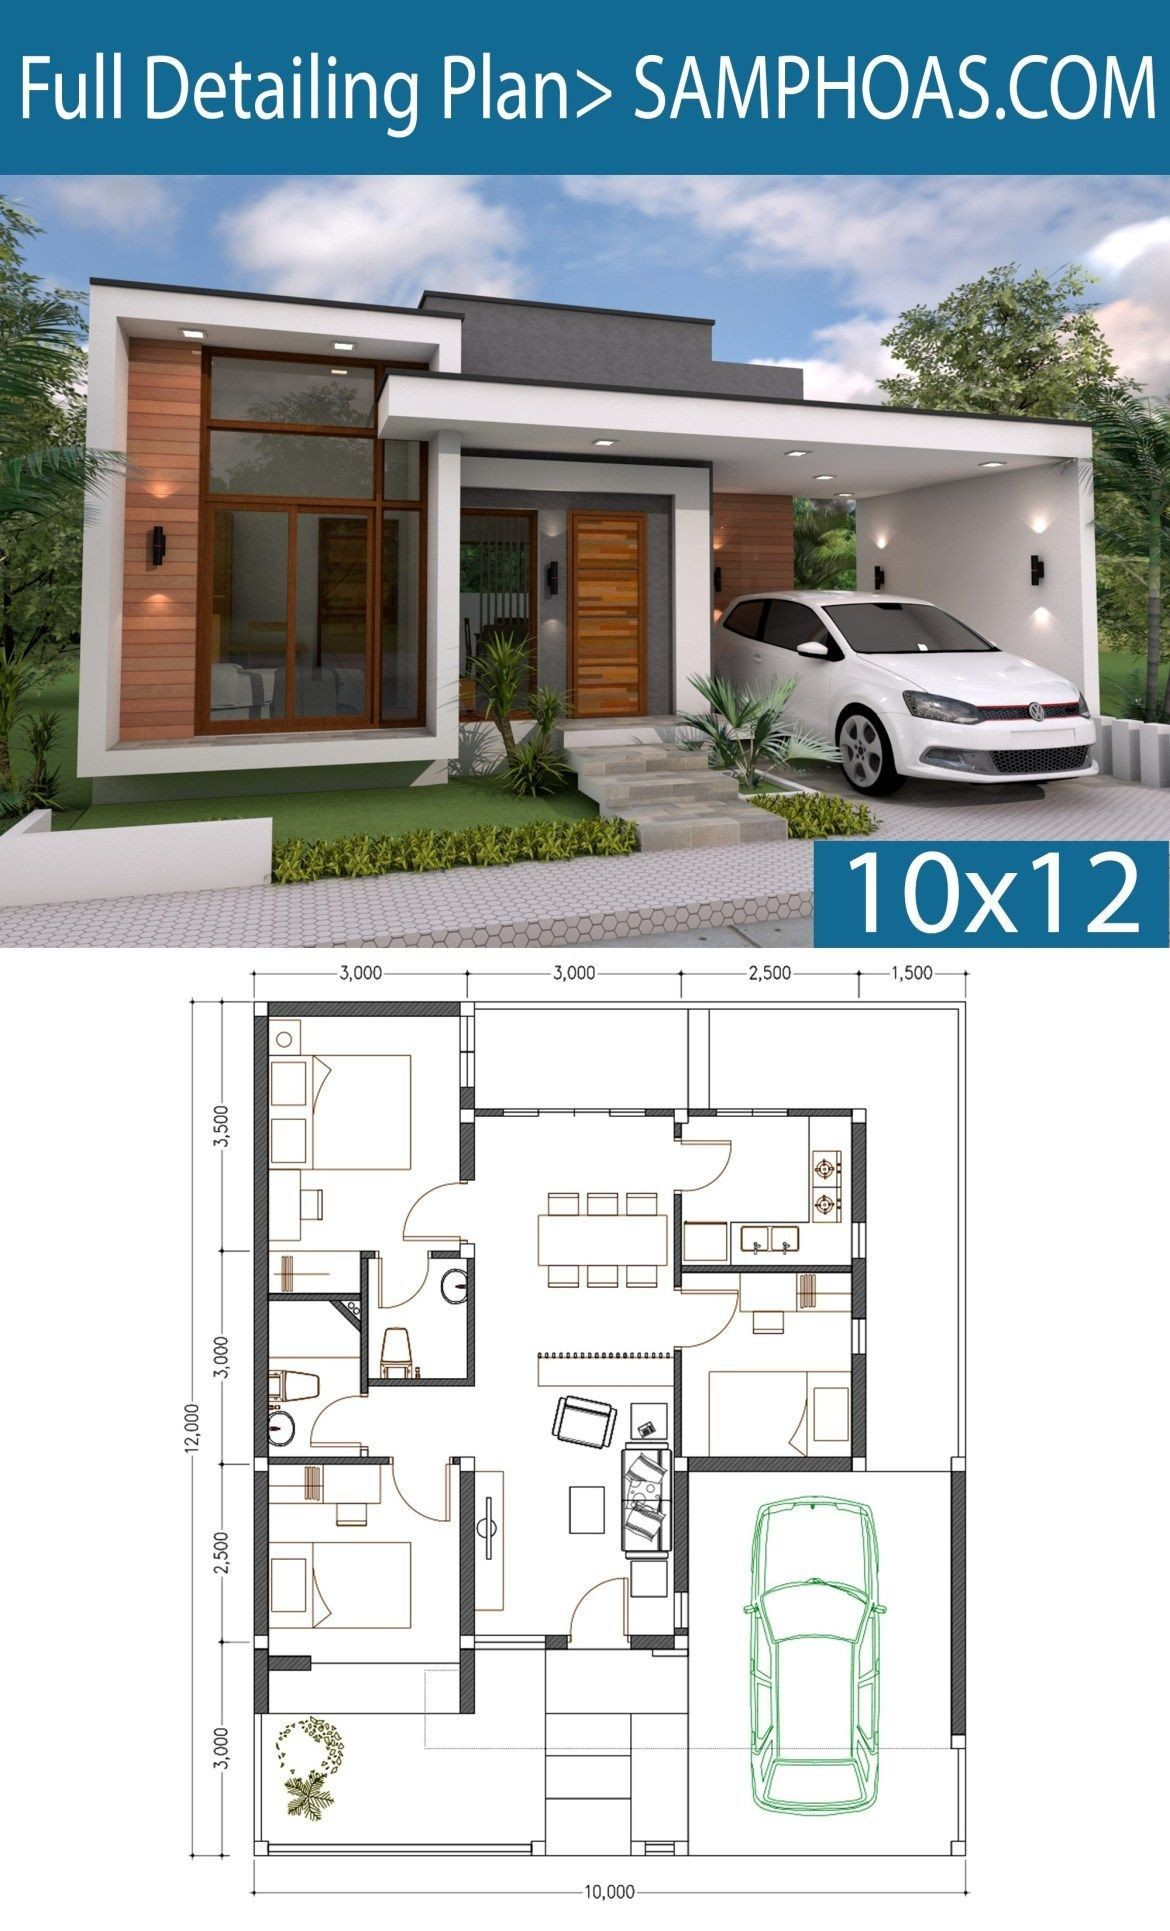 One Story Modern House Designs 3 Bedrooms Home Design Plan 10x12m Arsitektur Rumah Denah Rumah Rumah Minimalis